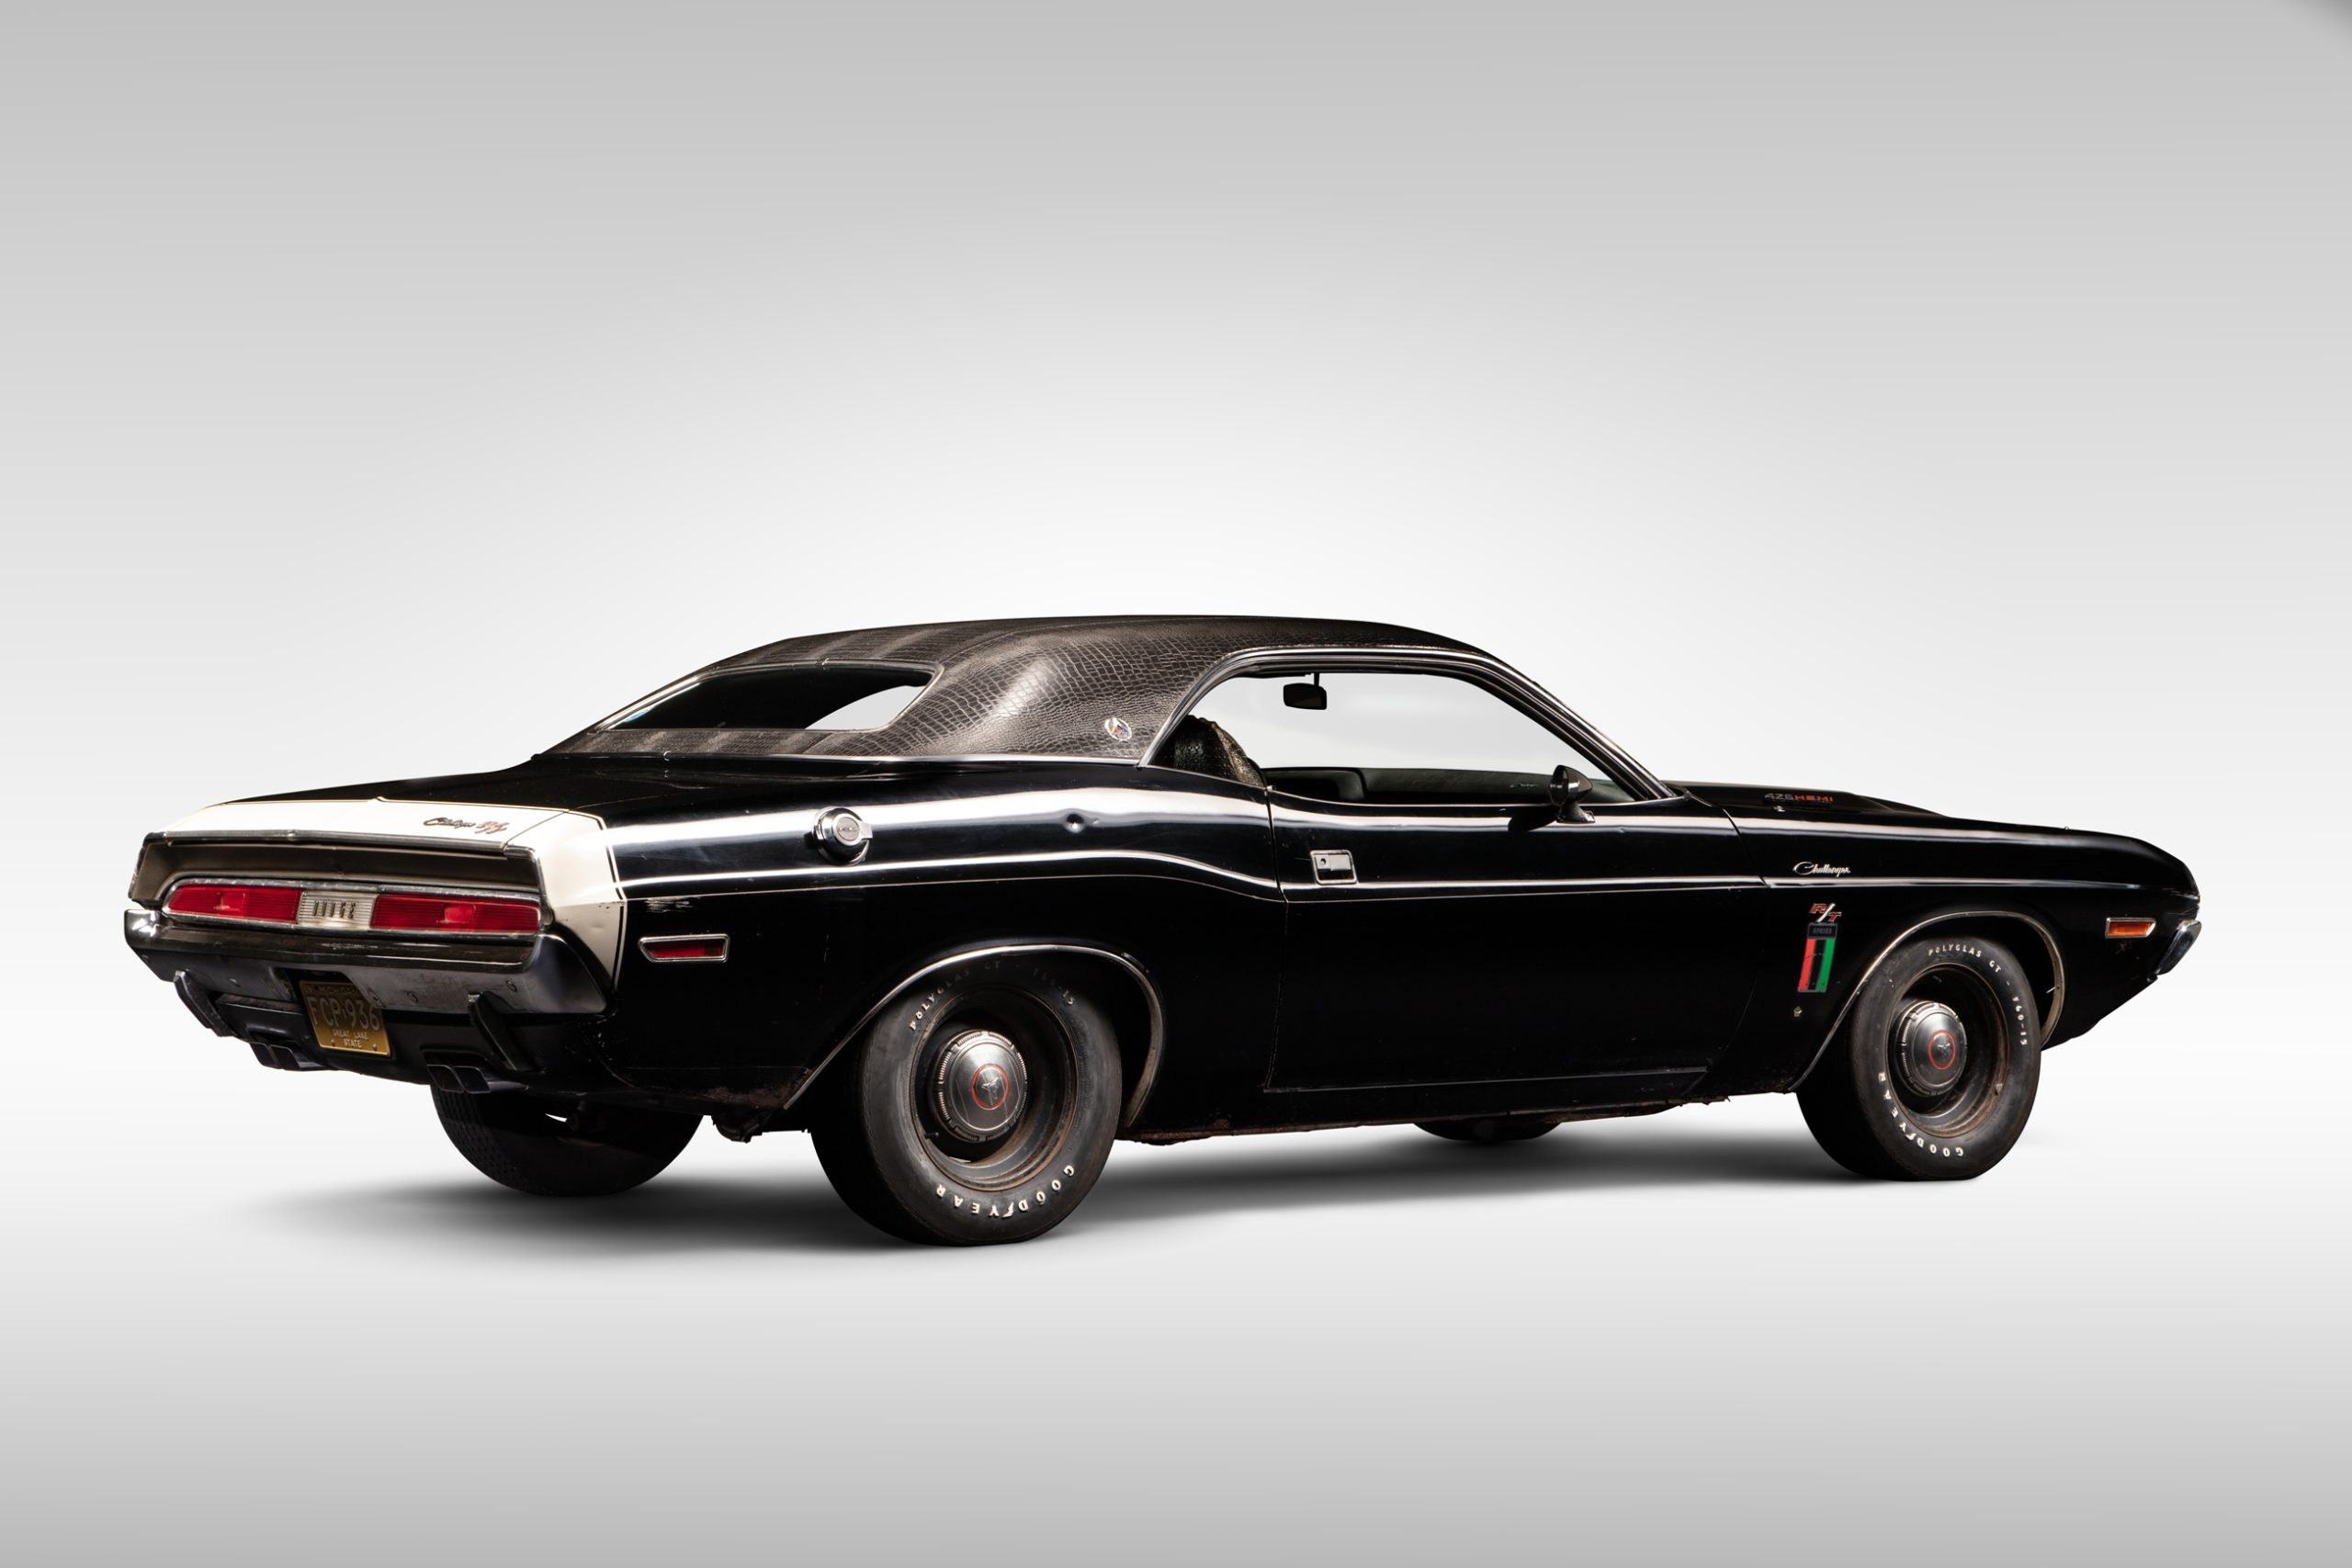 1970 Quall Challenger